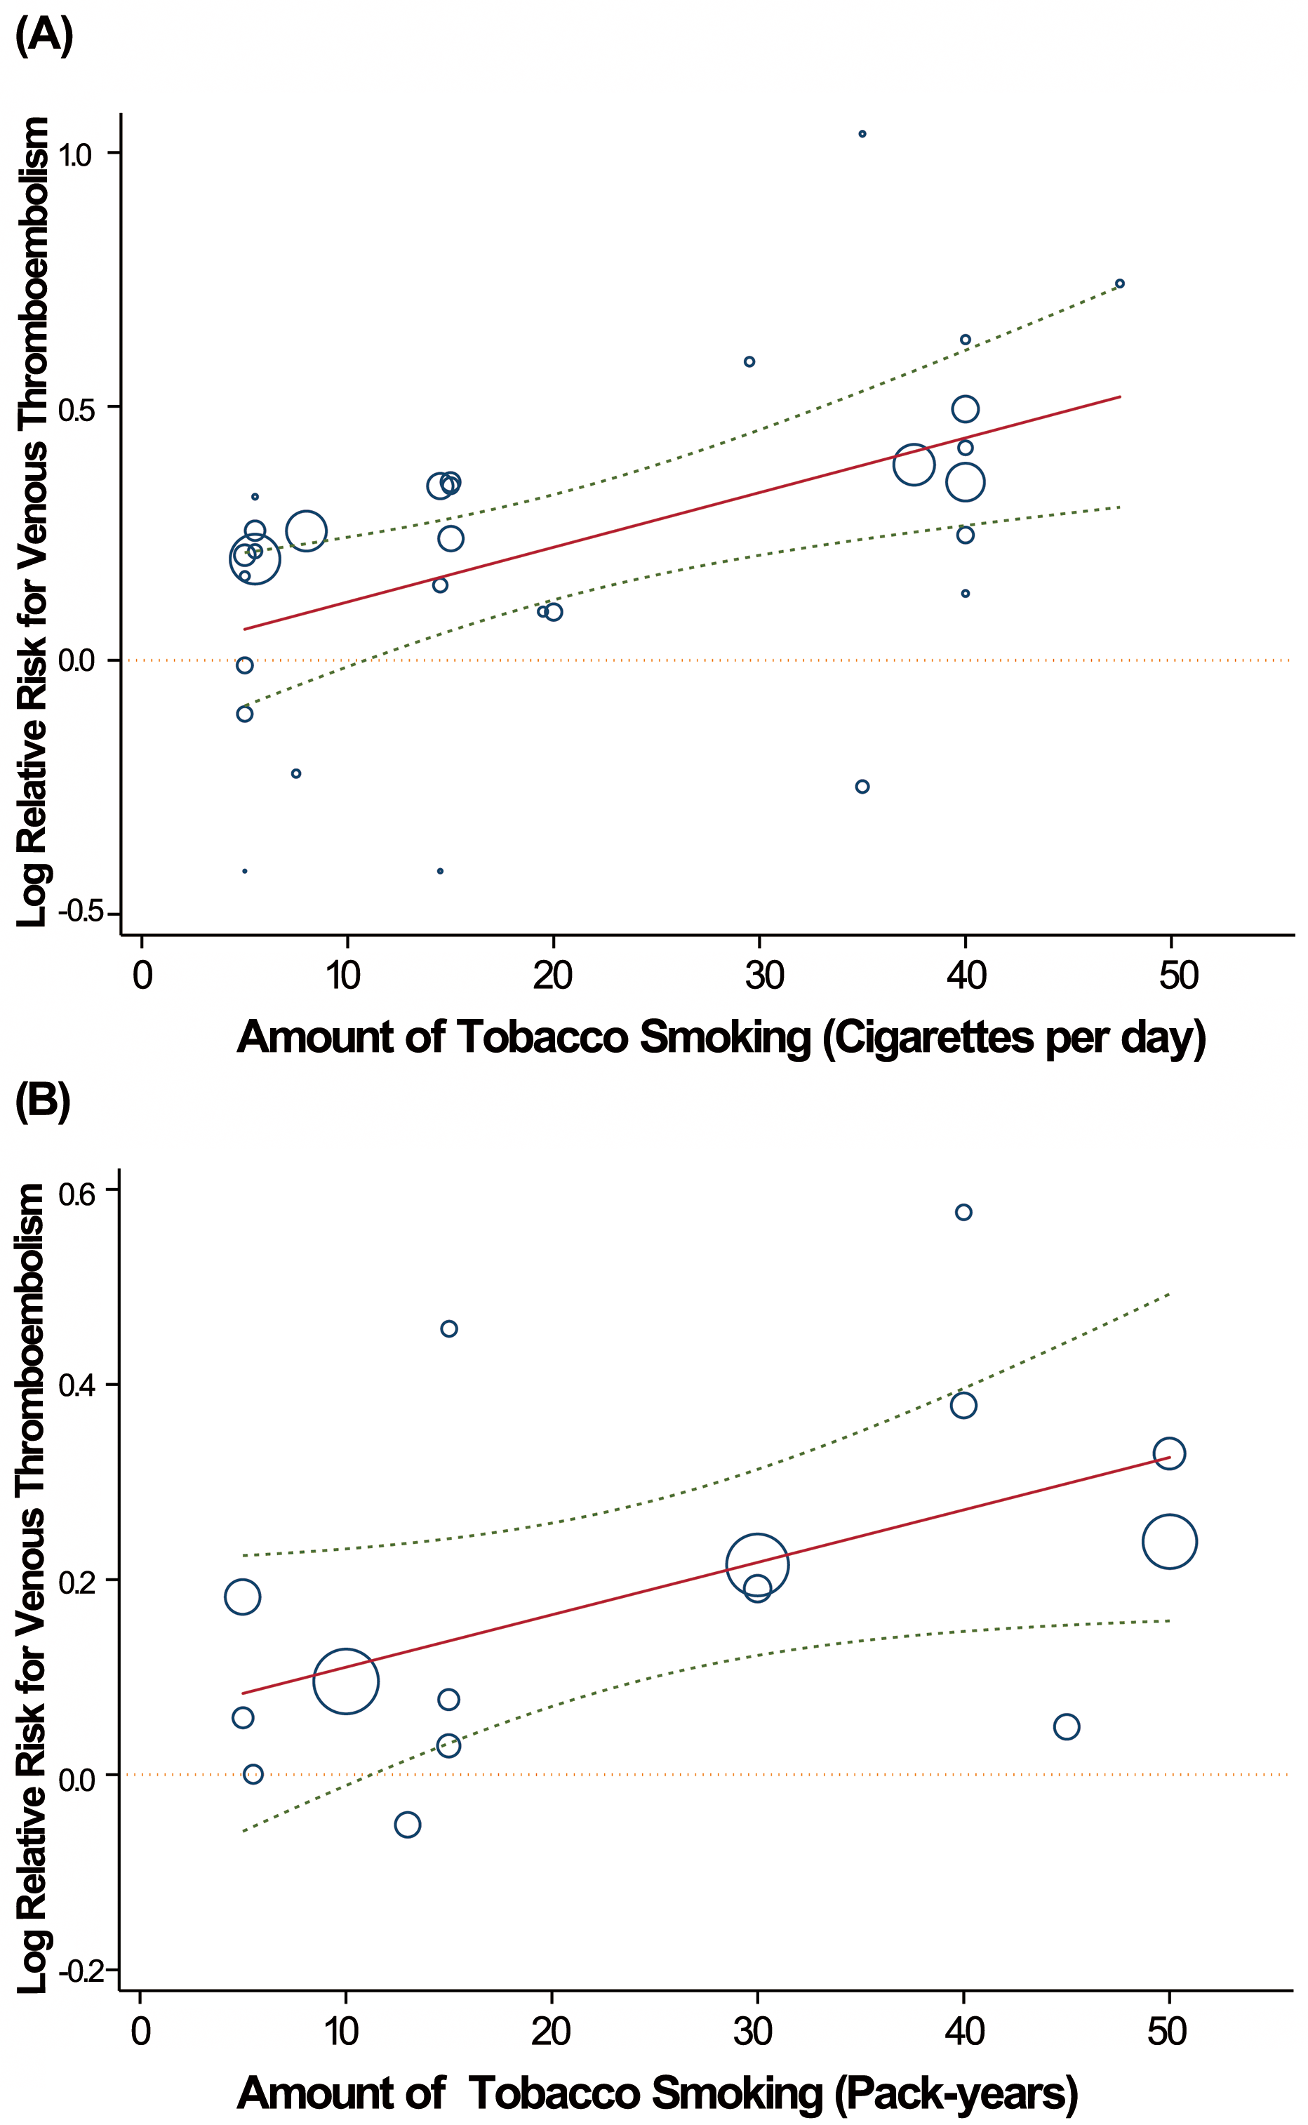 Linear dose-response relationship between relative risk of VTE incidence and tobacco consumption with cigarettes per day (A) and pack-years (B) as the explanatory variables.